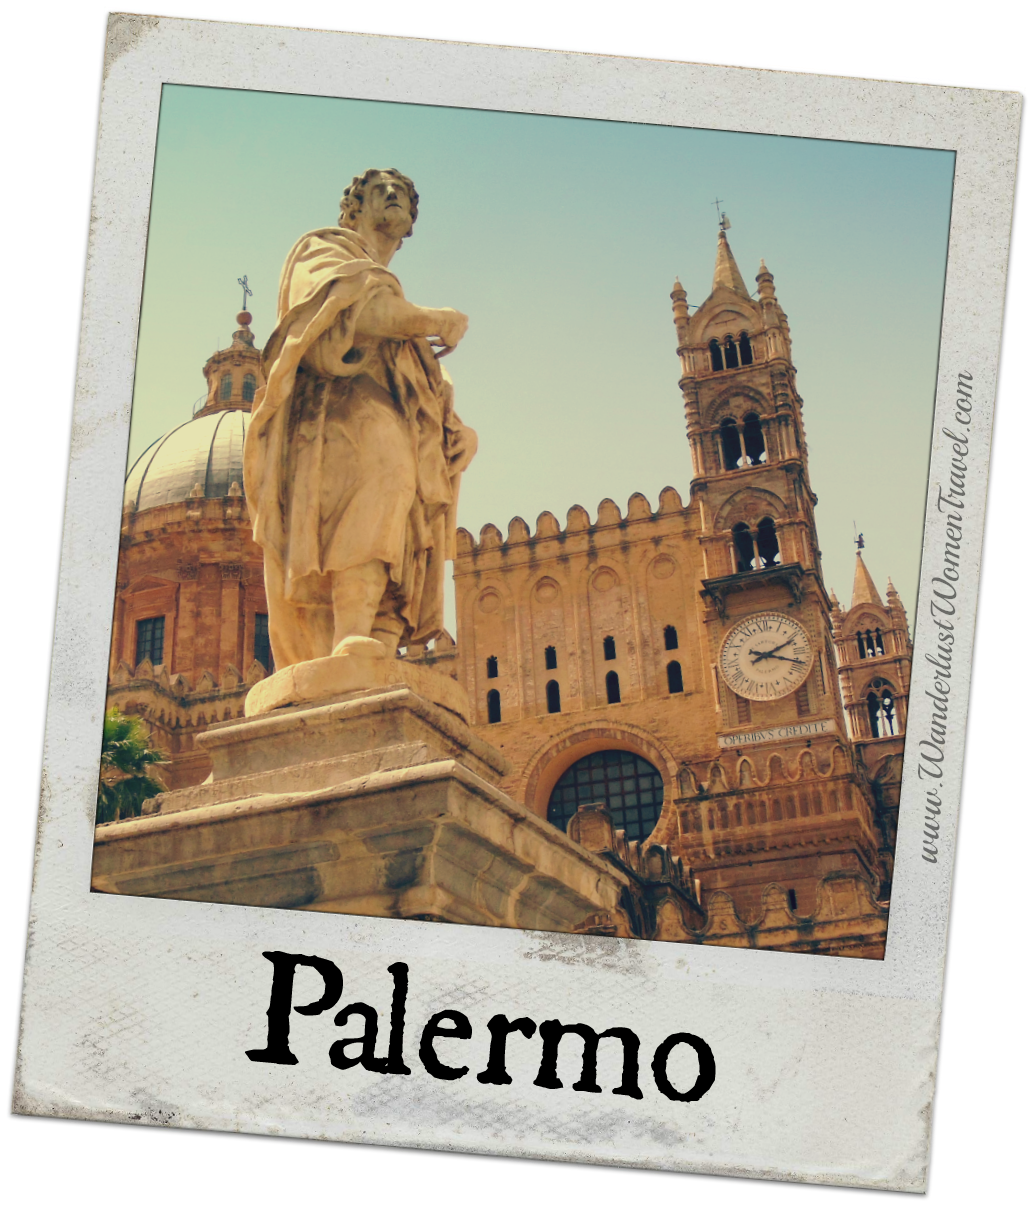 palermo women Palermocom is your one stop portal for everything palermo, italy if you are planning a trip to palermo or sicily you can find everything you need to know before you leave the united states or any other country you reside in use our resources to get to palermo including finding a flight and travel agent to help you plan.